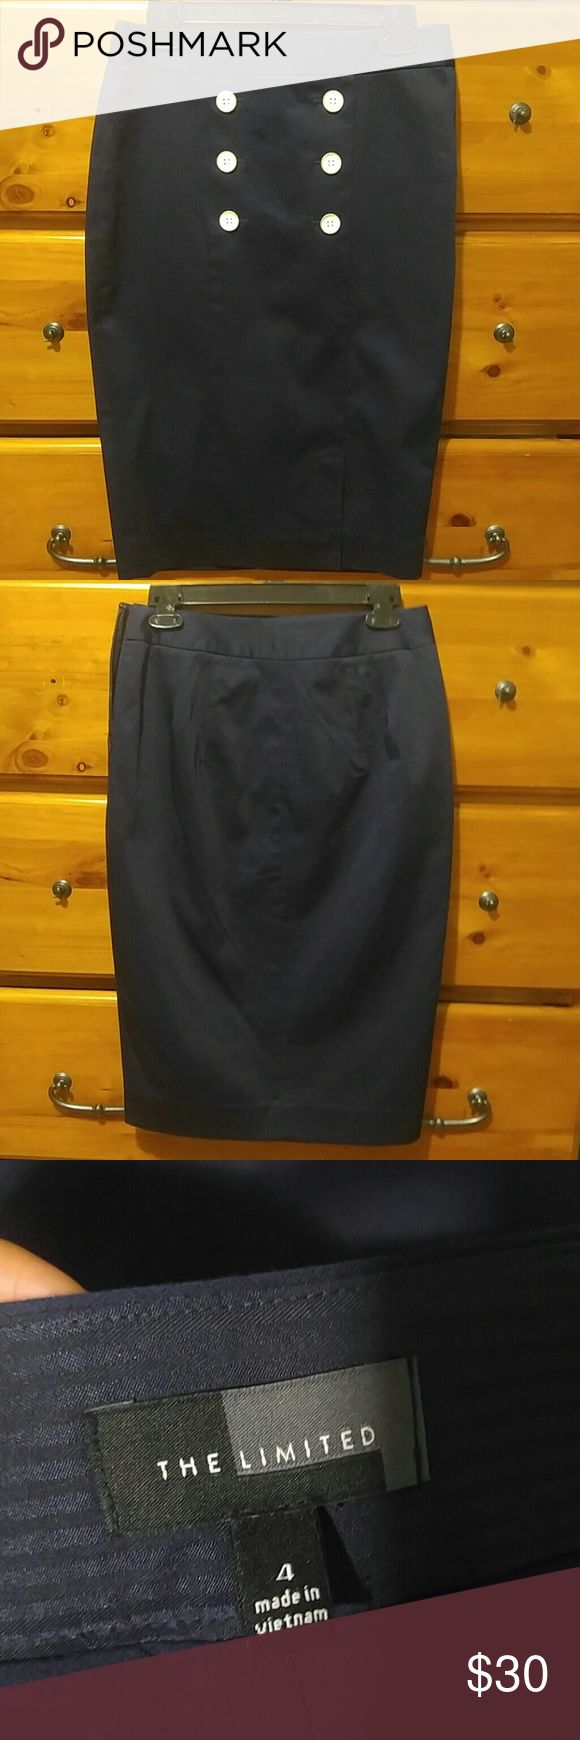 Navy blue pencil skirt Navy blue pencil skirt from the limited.   No defects.  Brand new.  Never worn.    No tag. The Limited Skirts Pencil